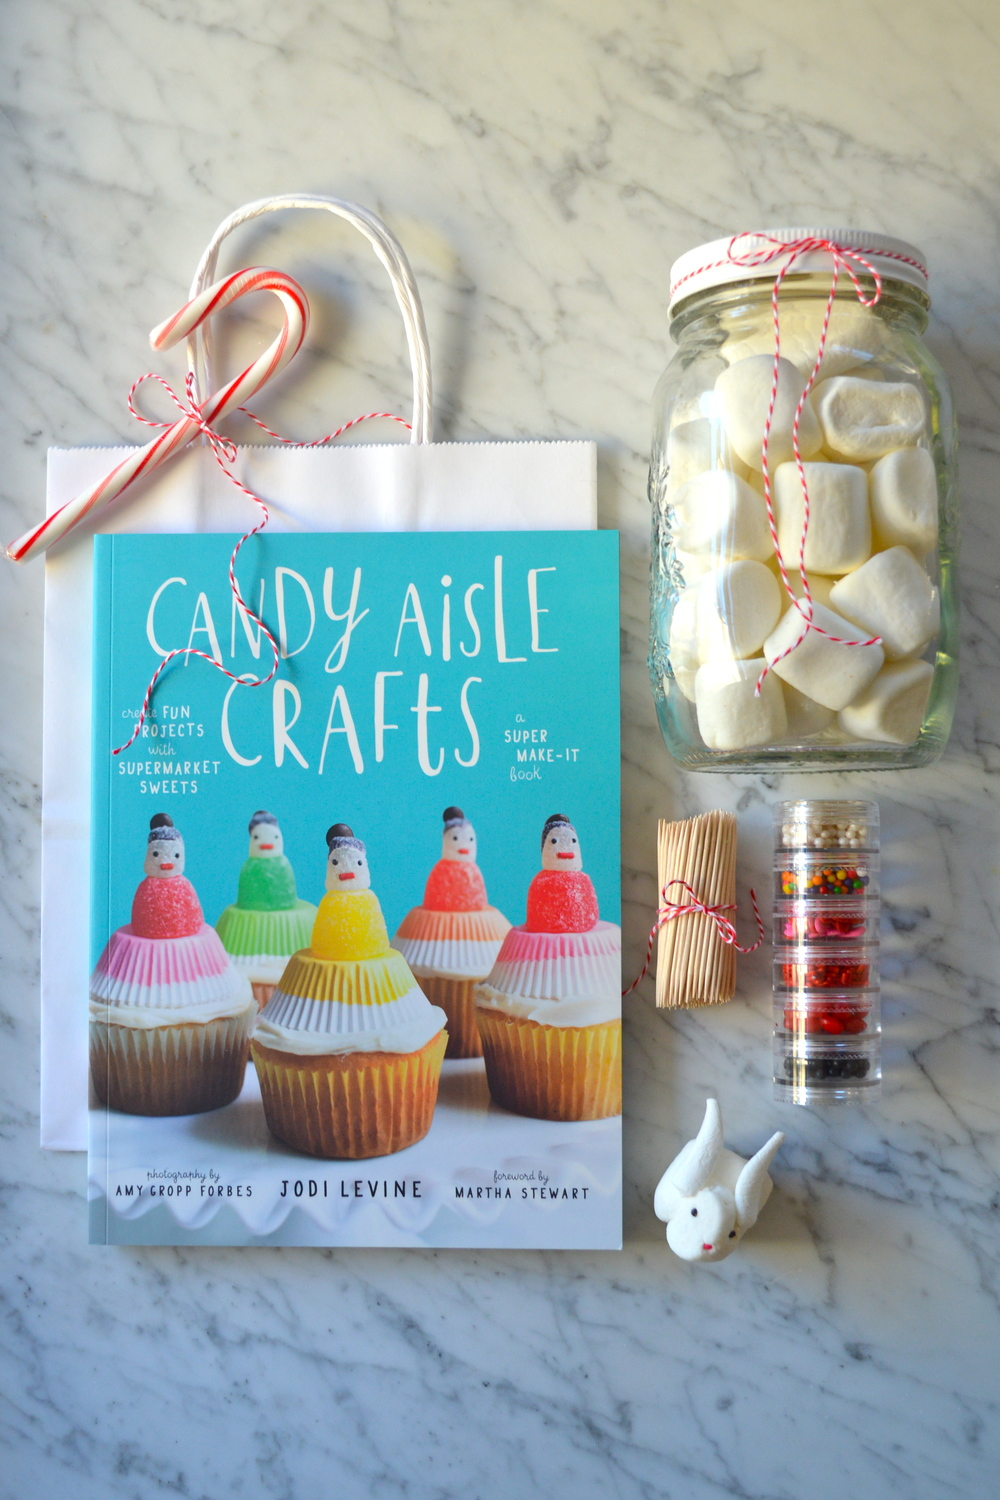 Candy-Asile-Crafts-Marshmallow-Craft-Kit